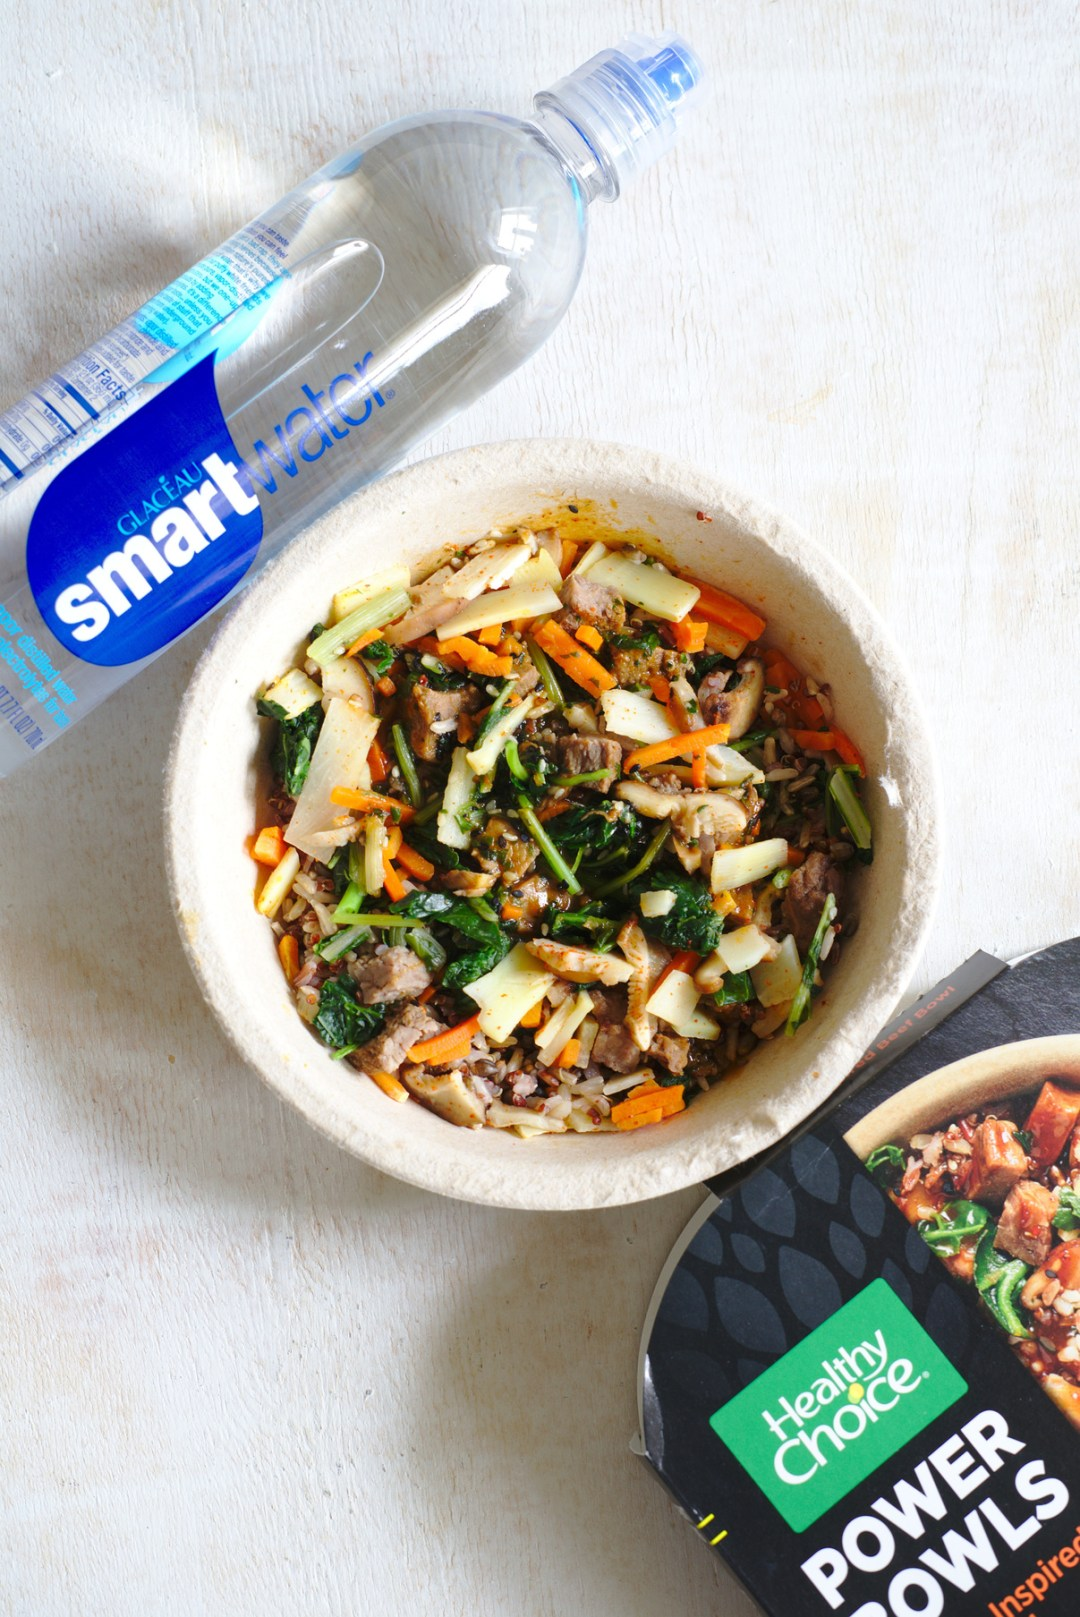 Healthy Choice Korean-Inspired Beef Bowl and smartwater